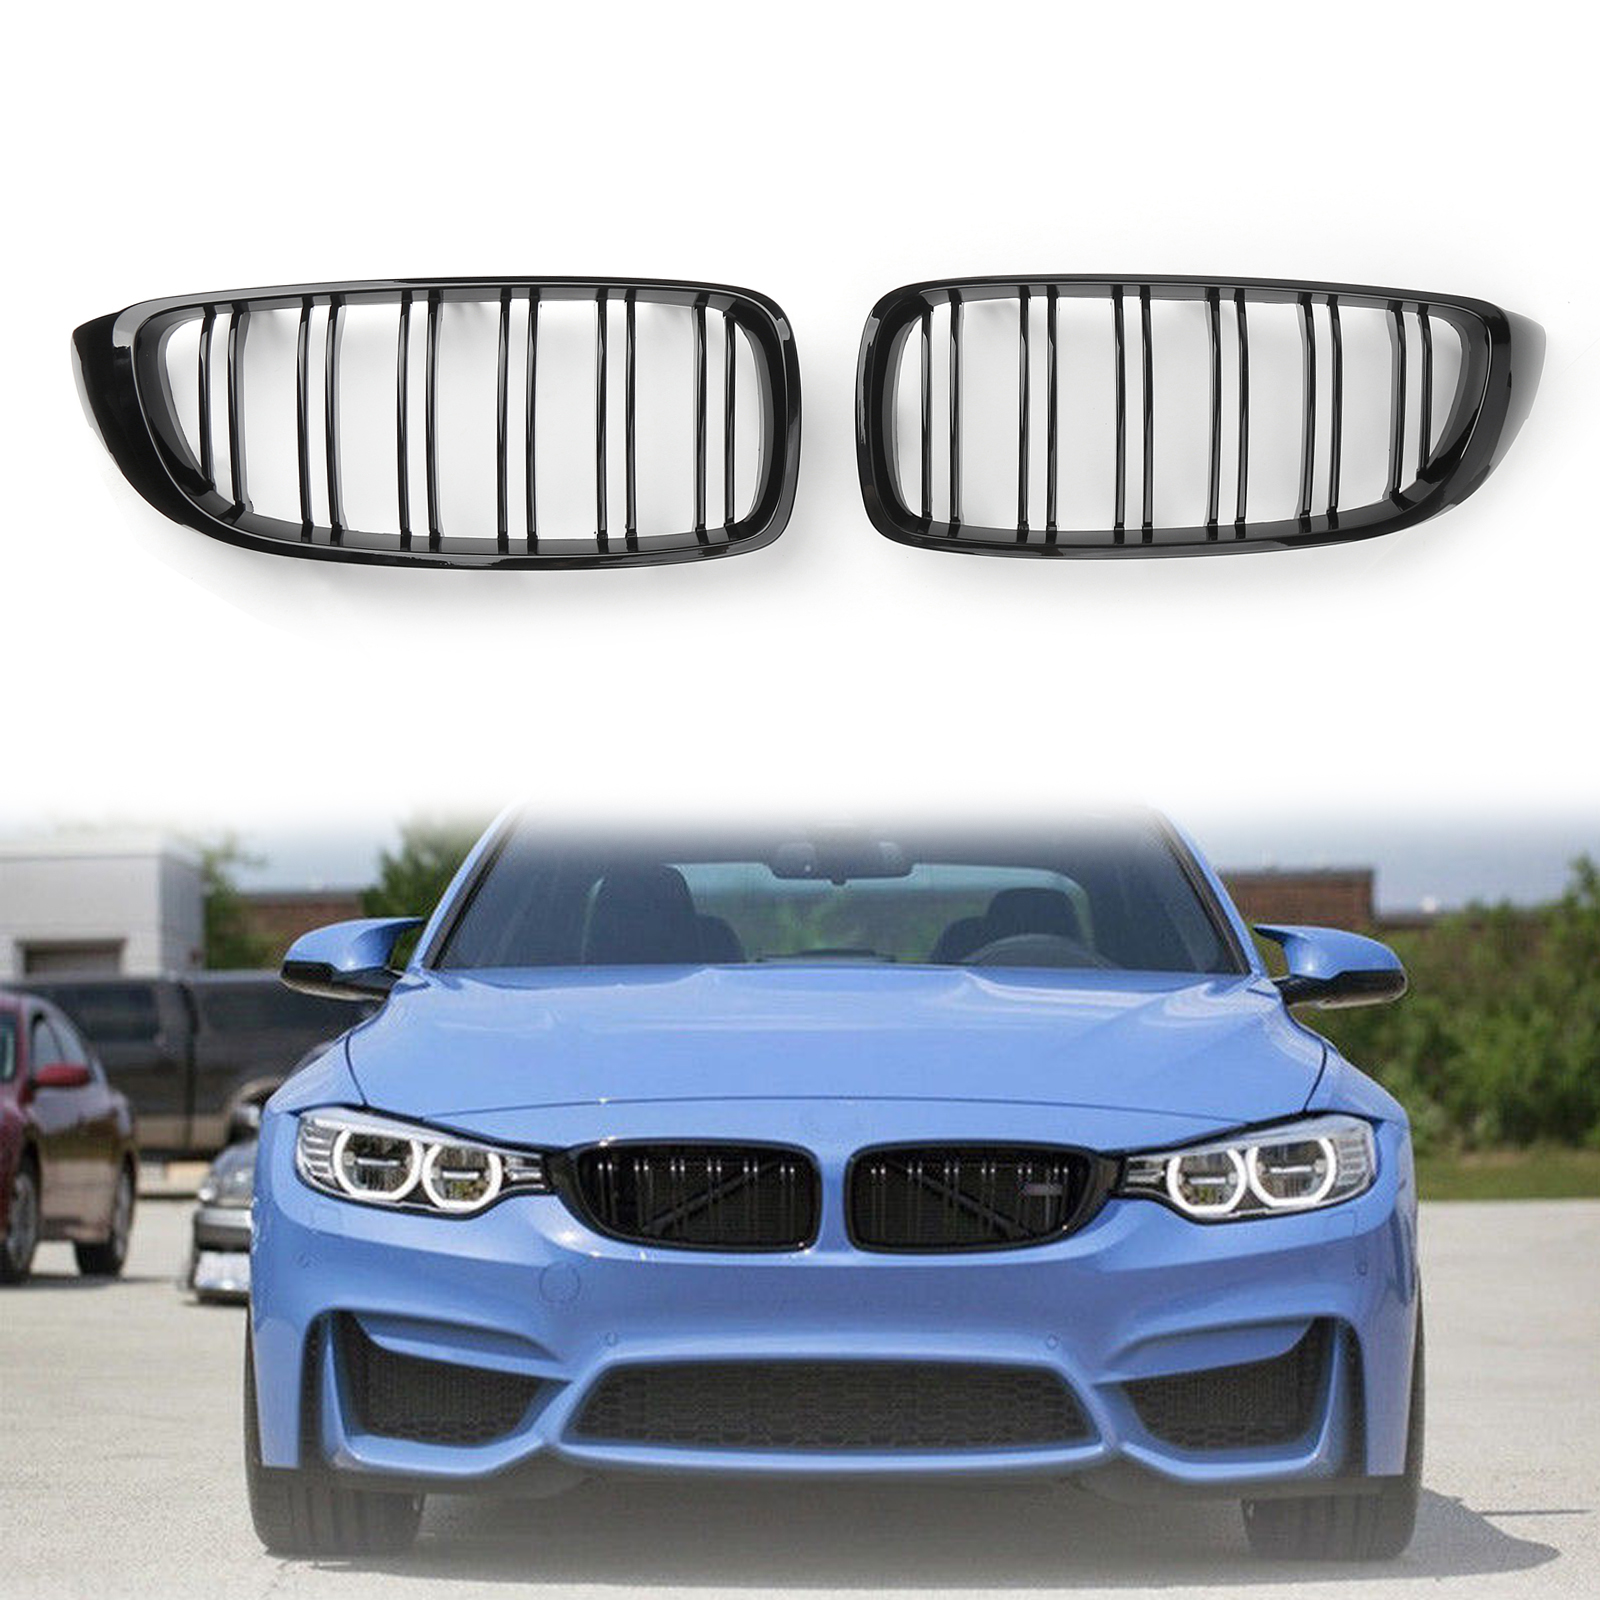 For Bmw F32 F33 F36 F82 2014 Gloss Black Kidney Grille